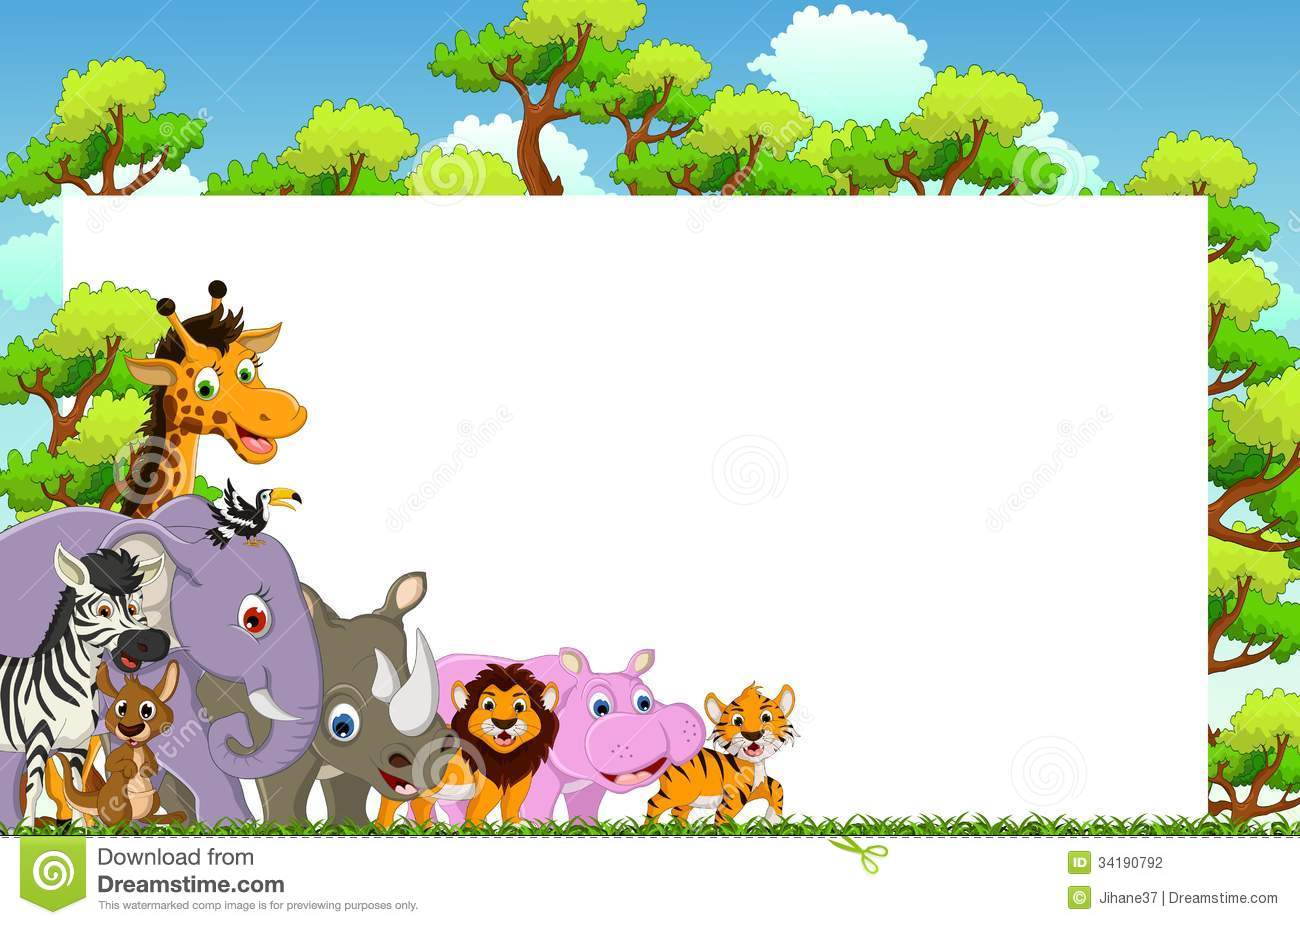 Animal background clipart 4 » Clipart Station.